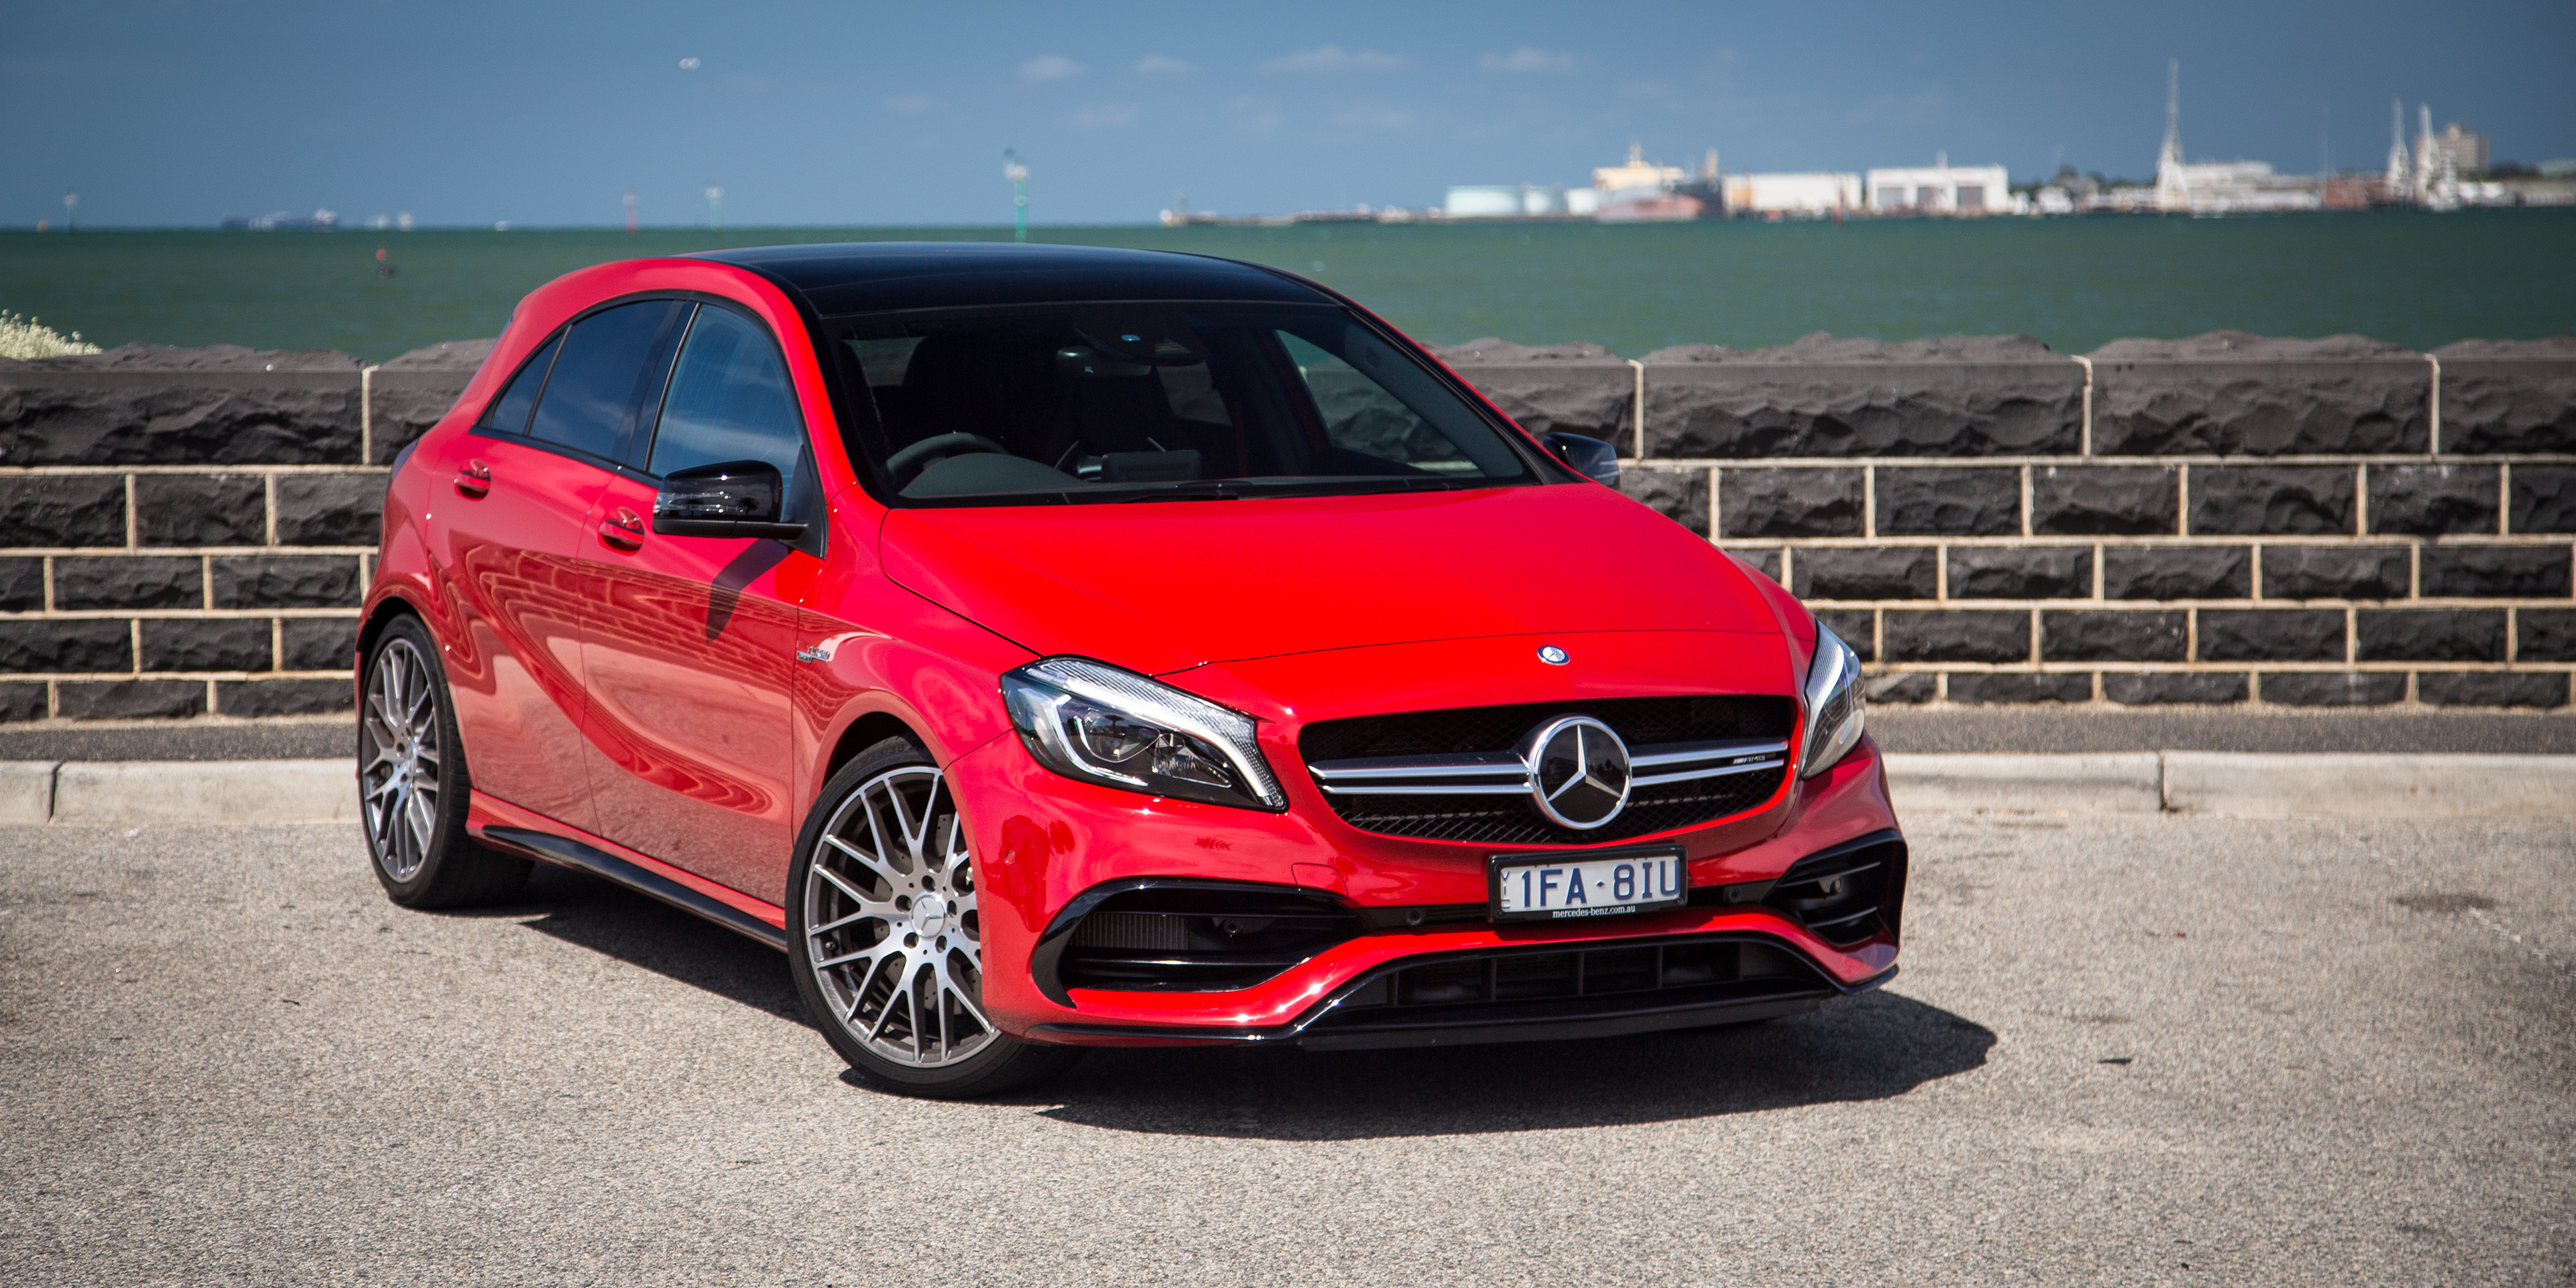 2016 mercedes amg a45 review photos caradvice. Black Bedroom Furniture Sets. Home Design Ideas